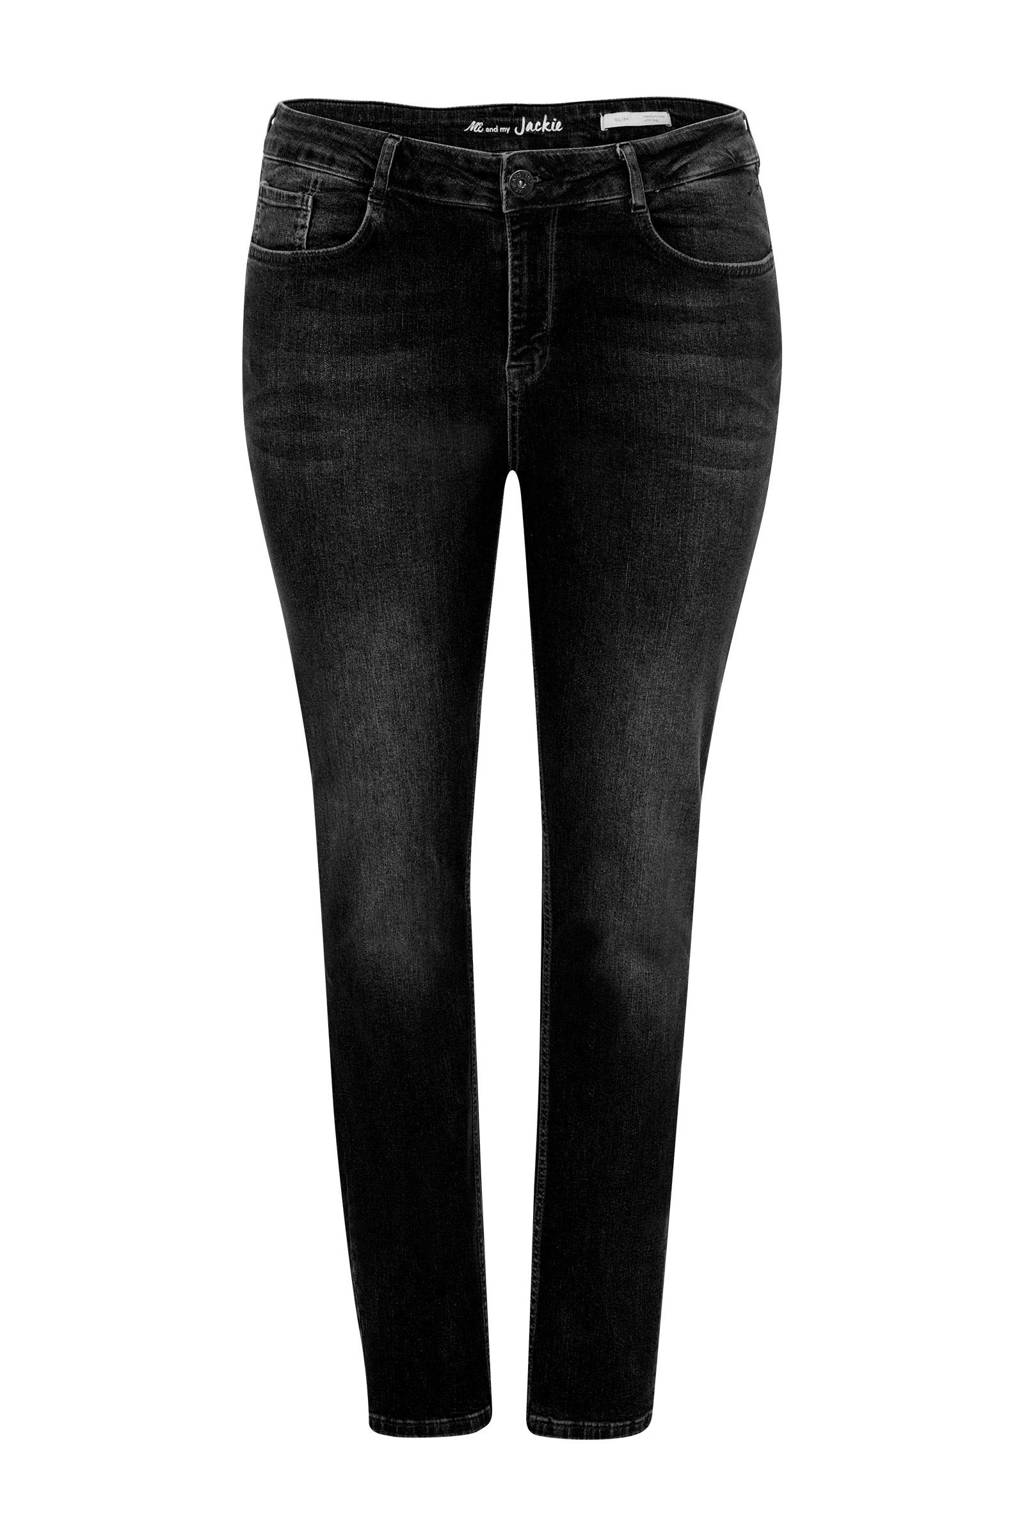 Miss Etam Plus slim fit jeans zwart, Zwart